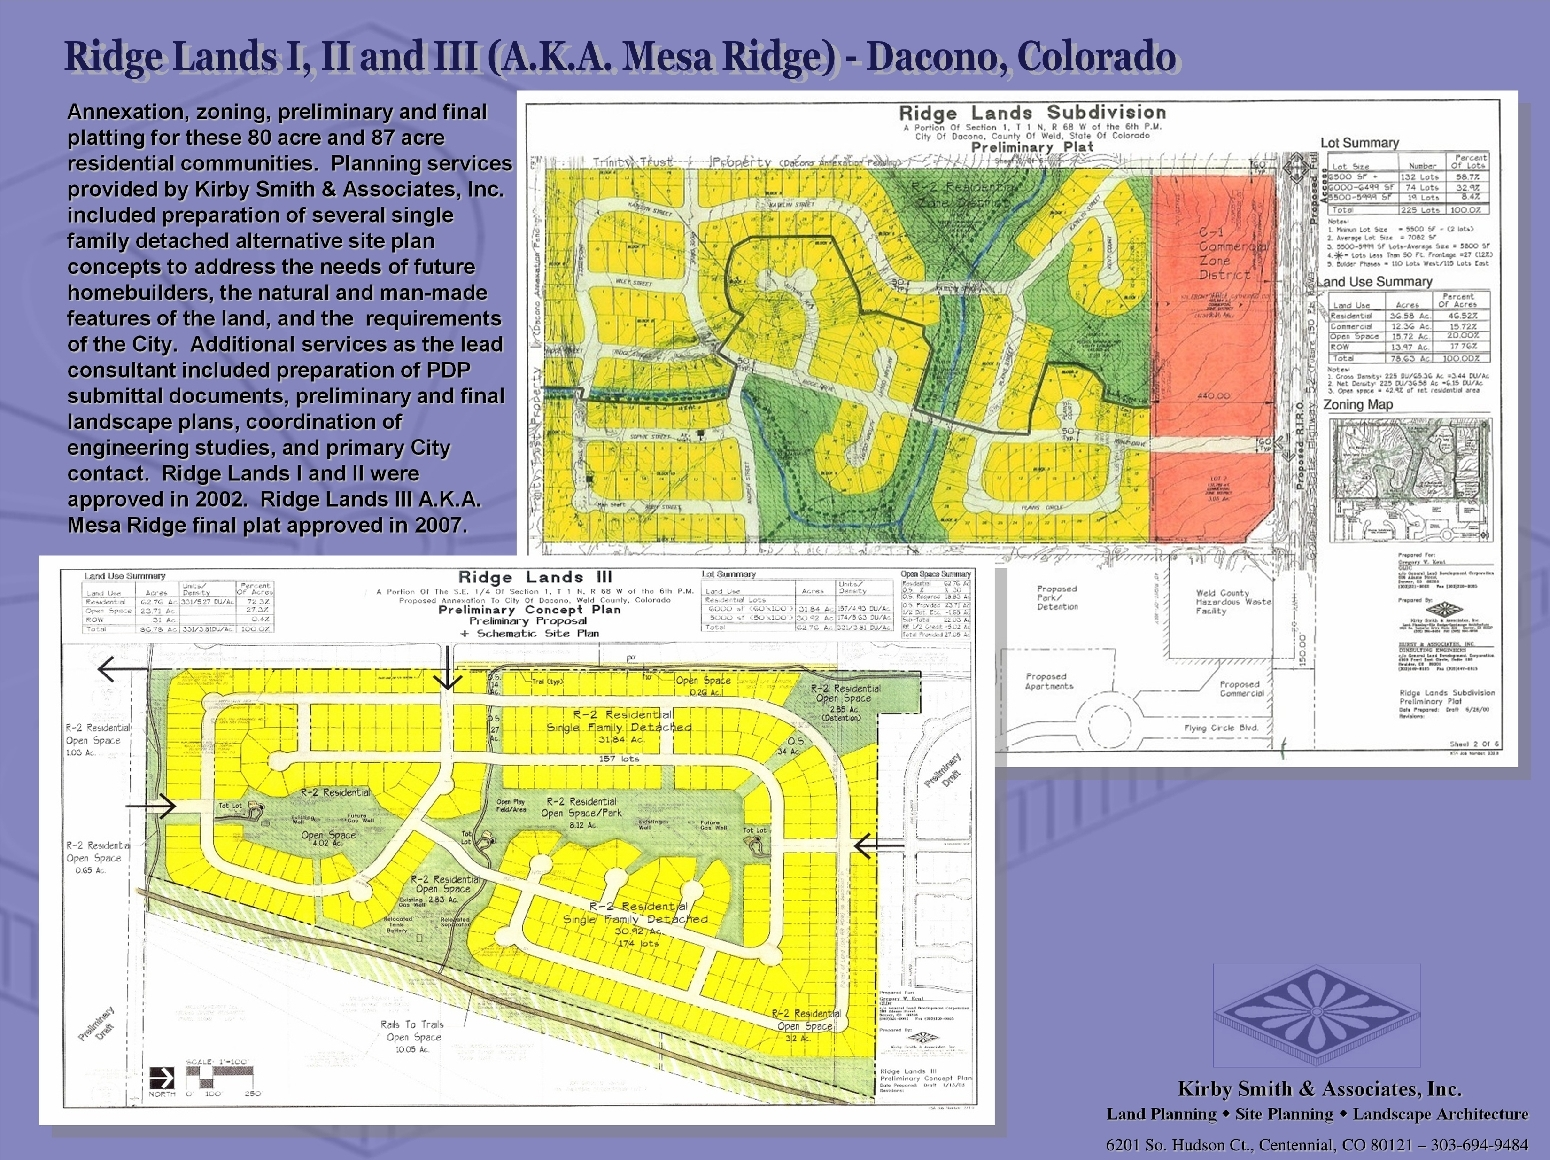 Annexation, zoning, and final platting for these 80 acre and 87 acre residential communities.  Planning services provided by Kirby Smith & Associates, Inc. included preparation of several single family site plan concepts to address the needs of future homebuilders, and the  requirements of the City.  Additional services included preparation of PDP submittal documents, landscape plans, coordination, and primary City contact.